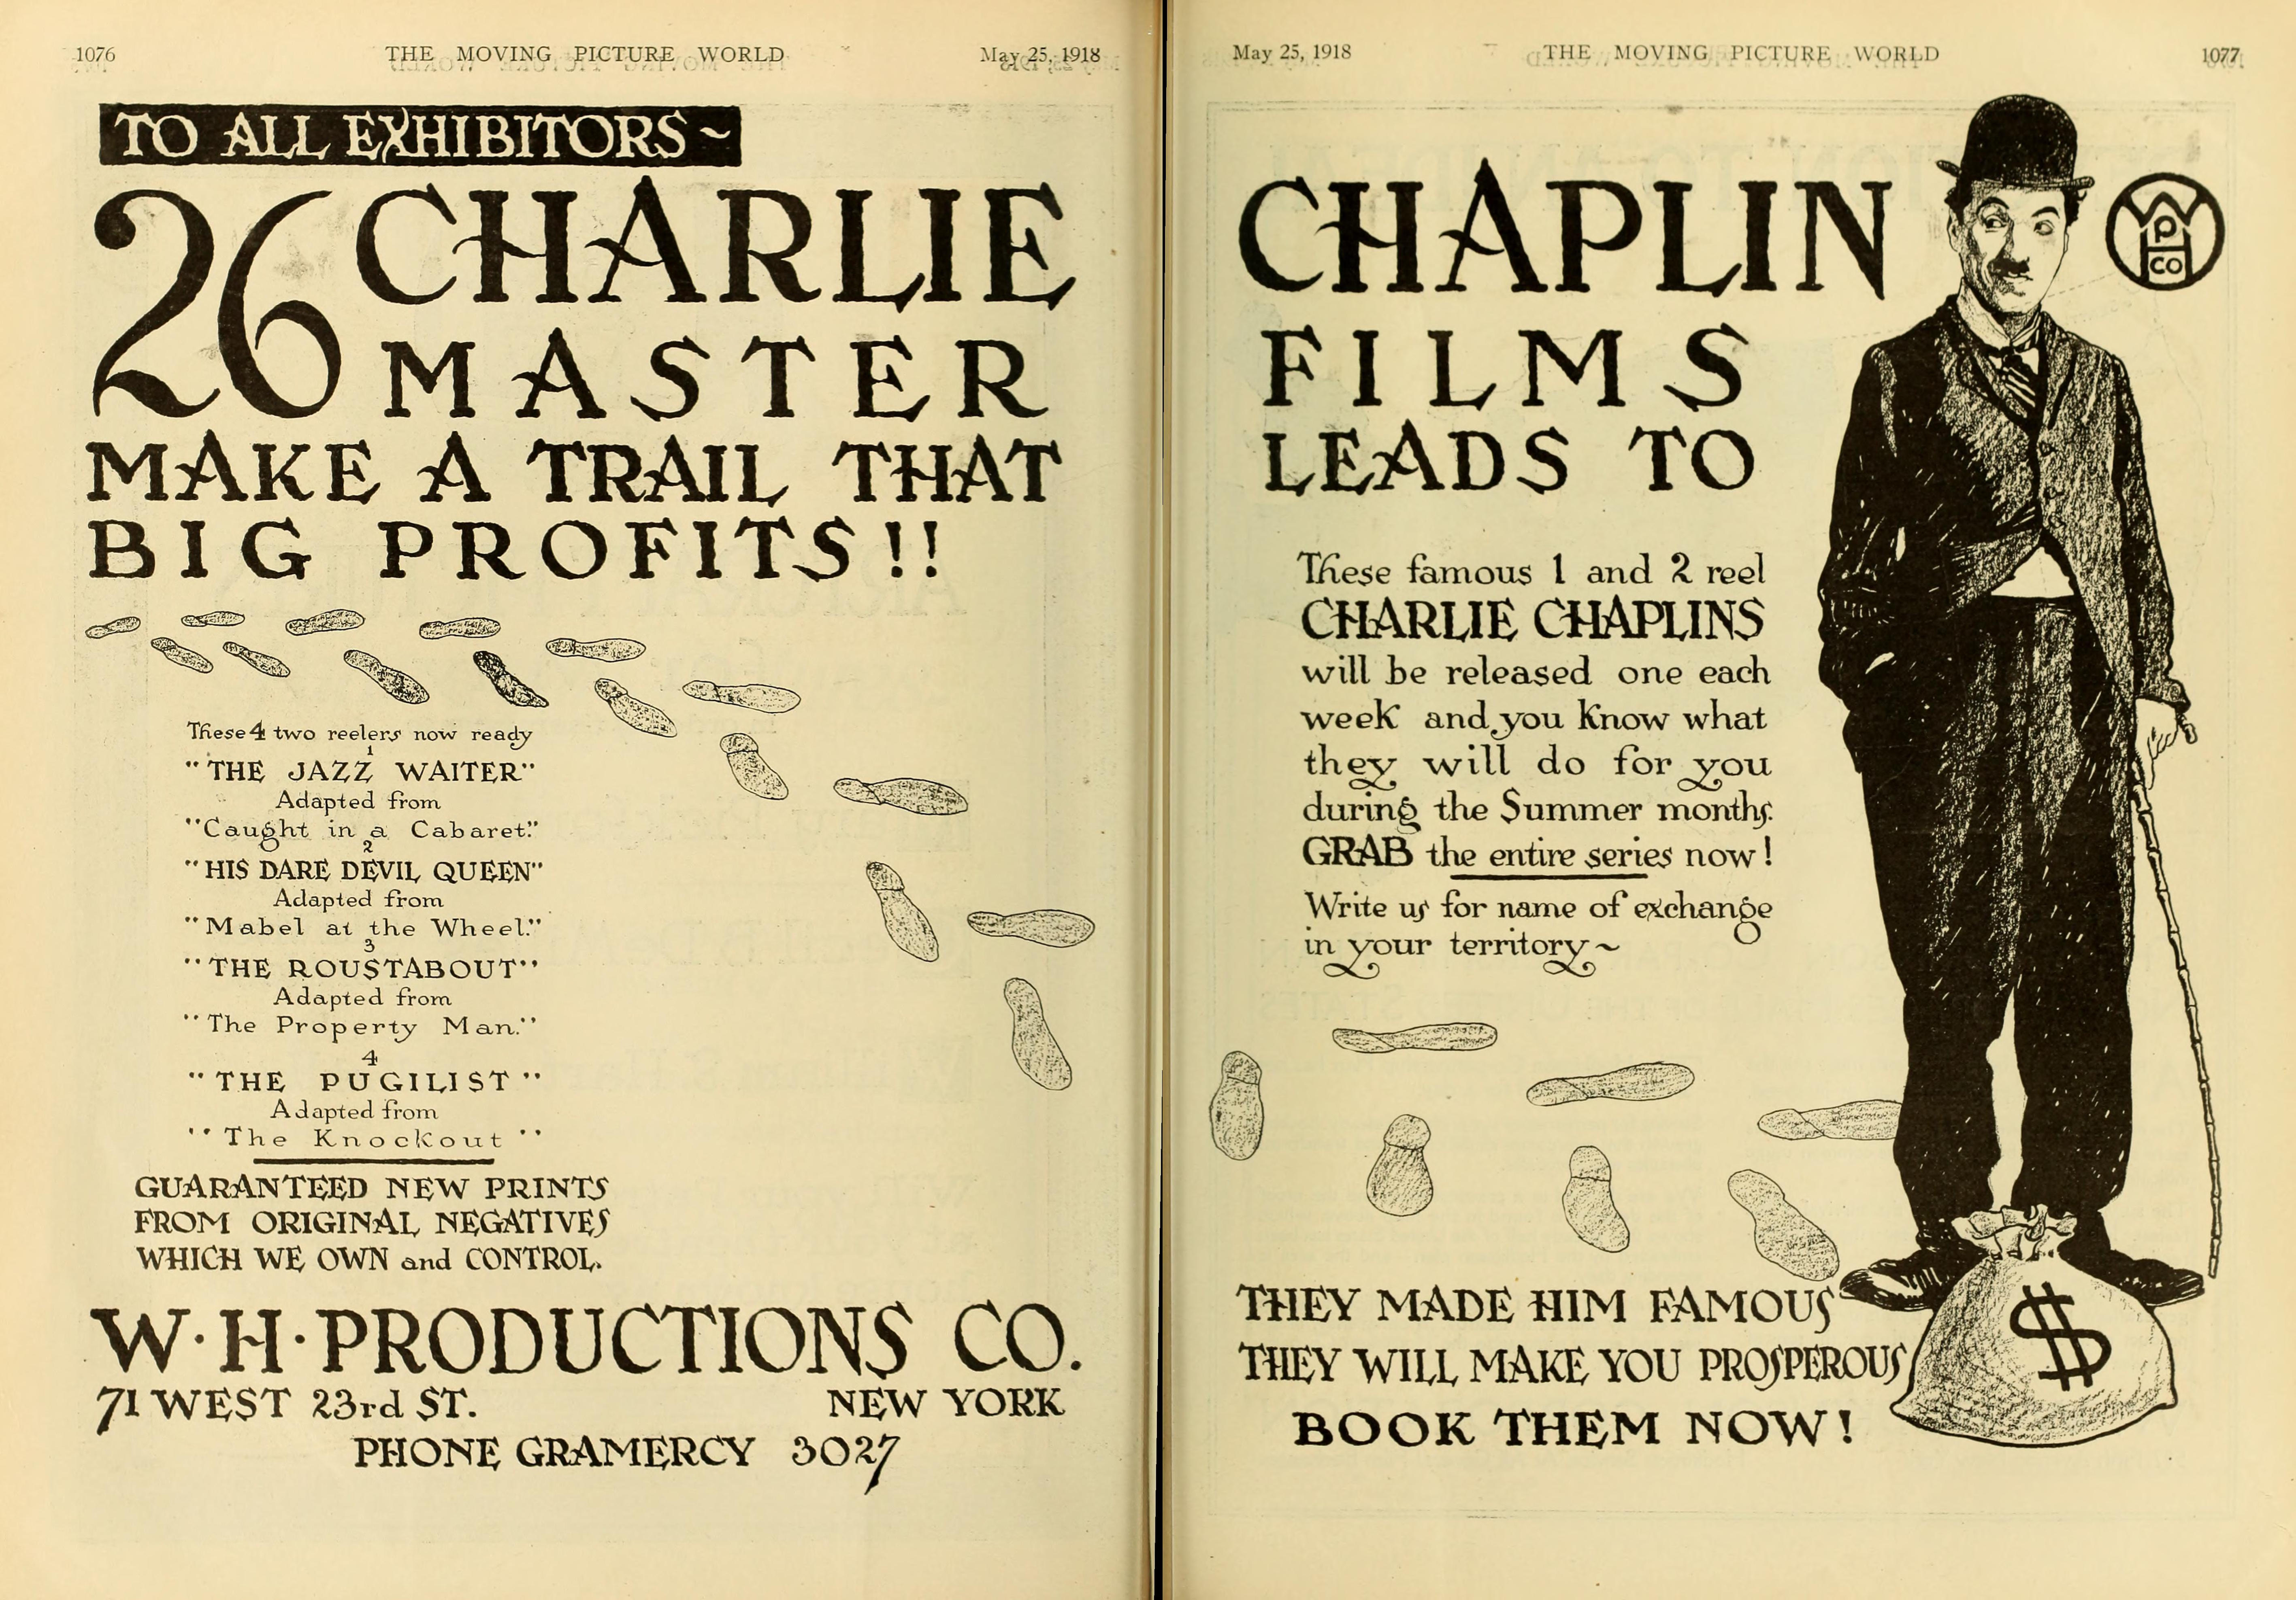 Charlie Chaplin Keystone shorts reissue advert, Moving Picture World magazine, May 25, 1918